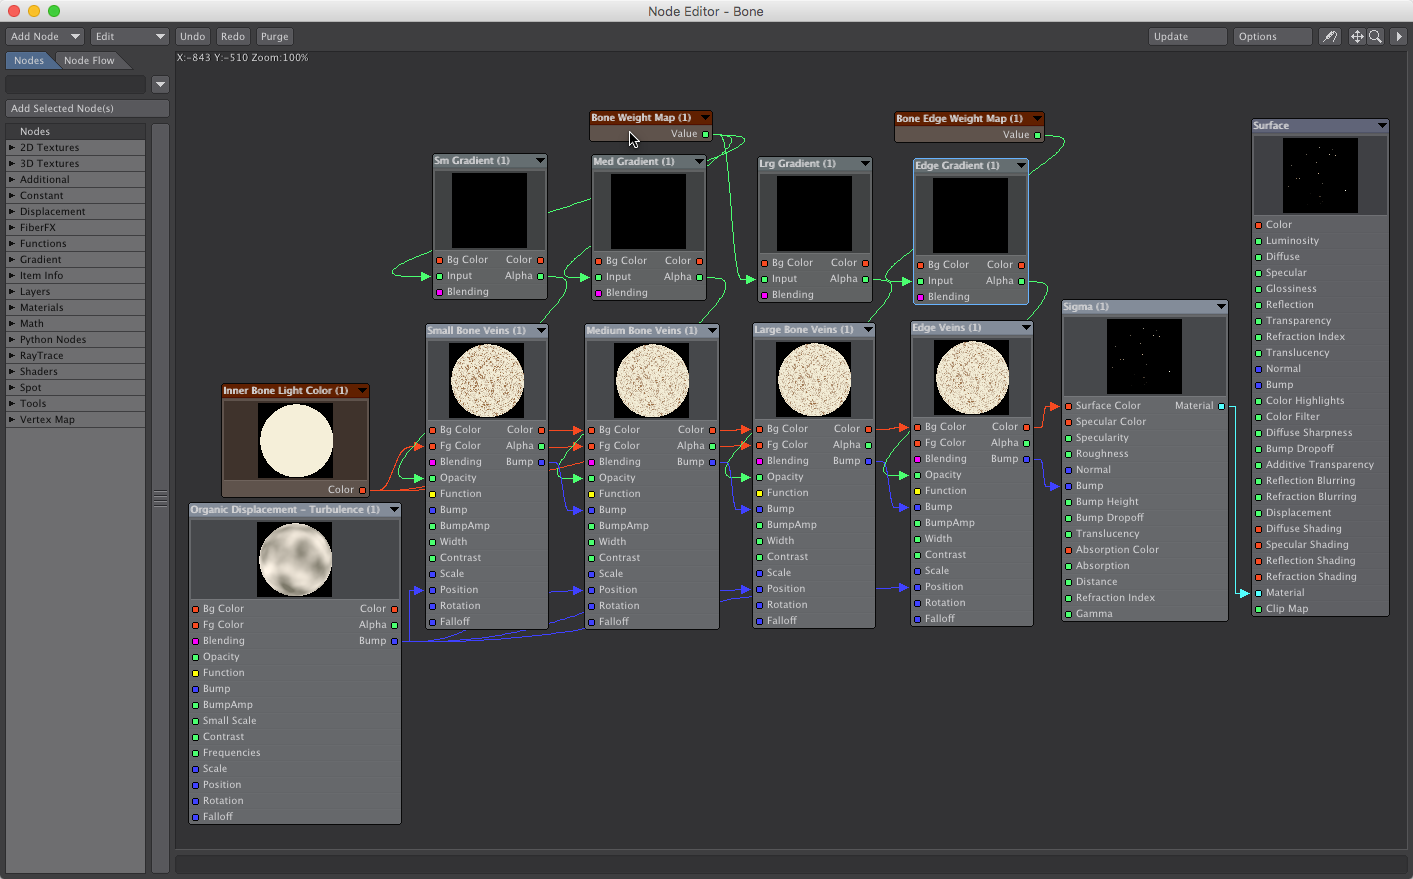 Bone Surface Texture Node Map - How to Create a Bone Texture with Weight Maps in LightWave 3D